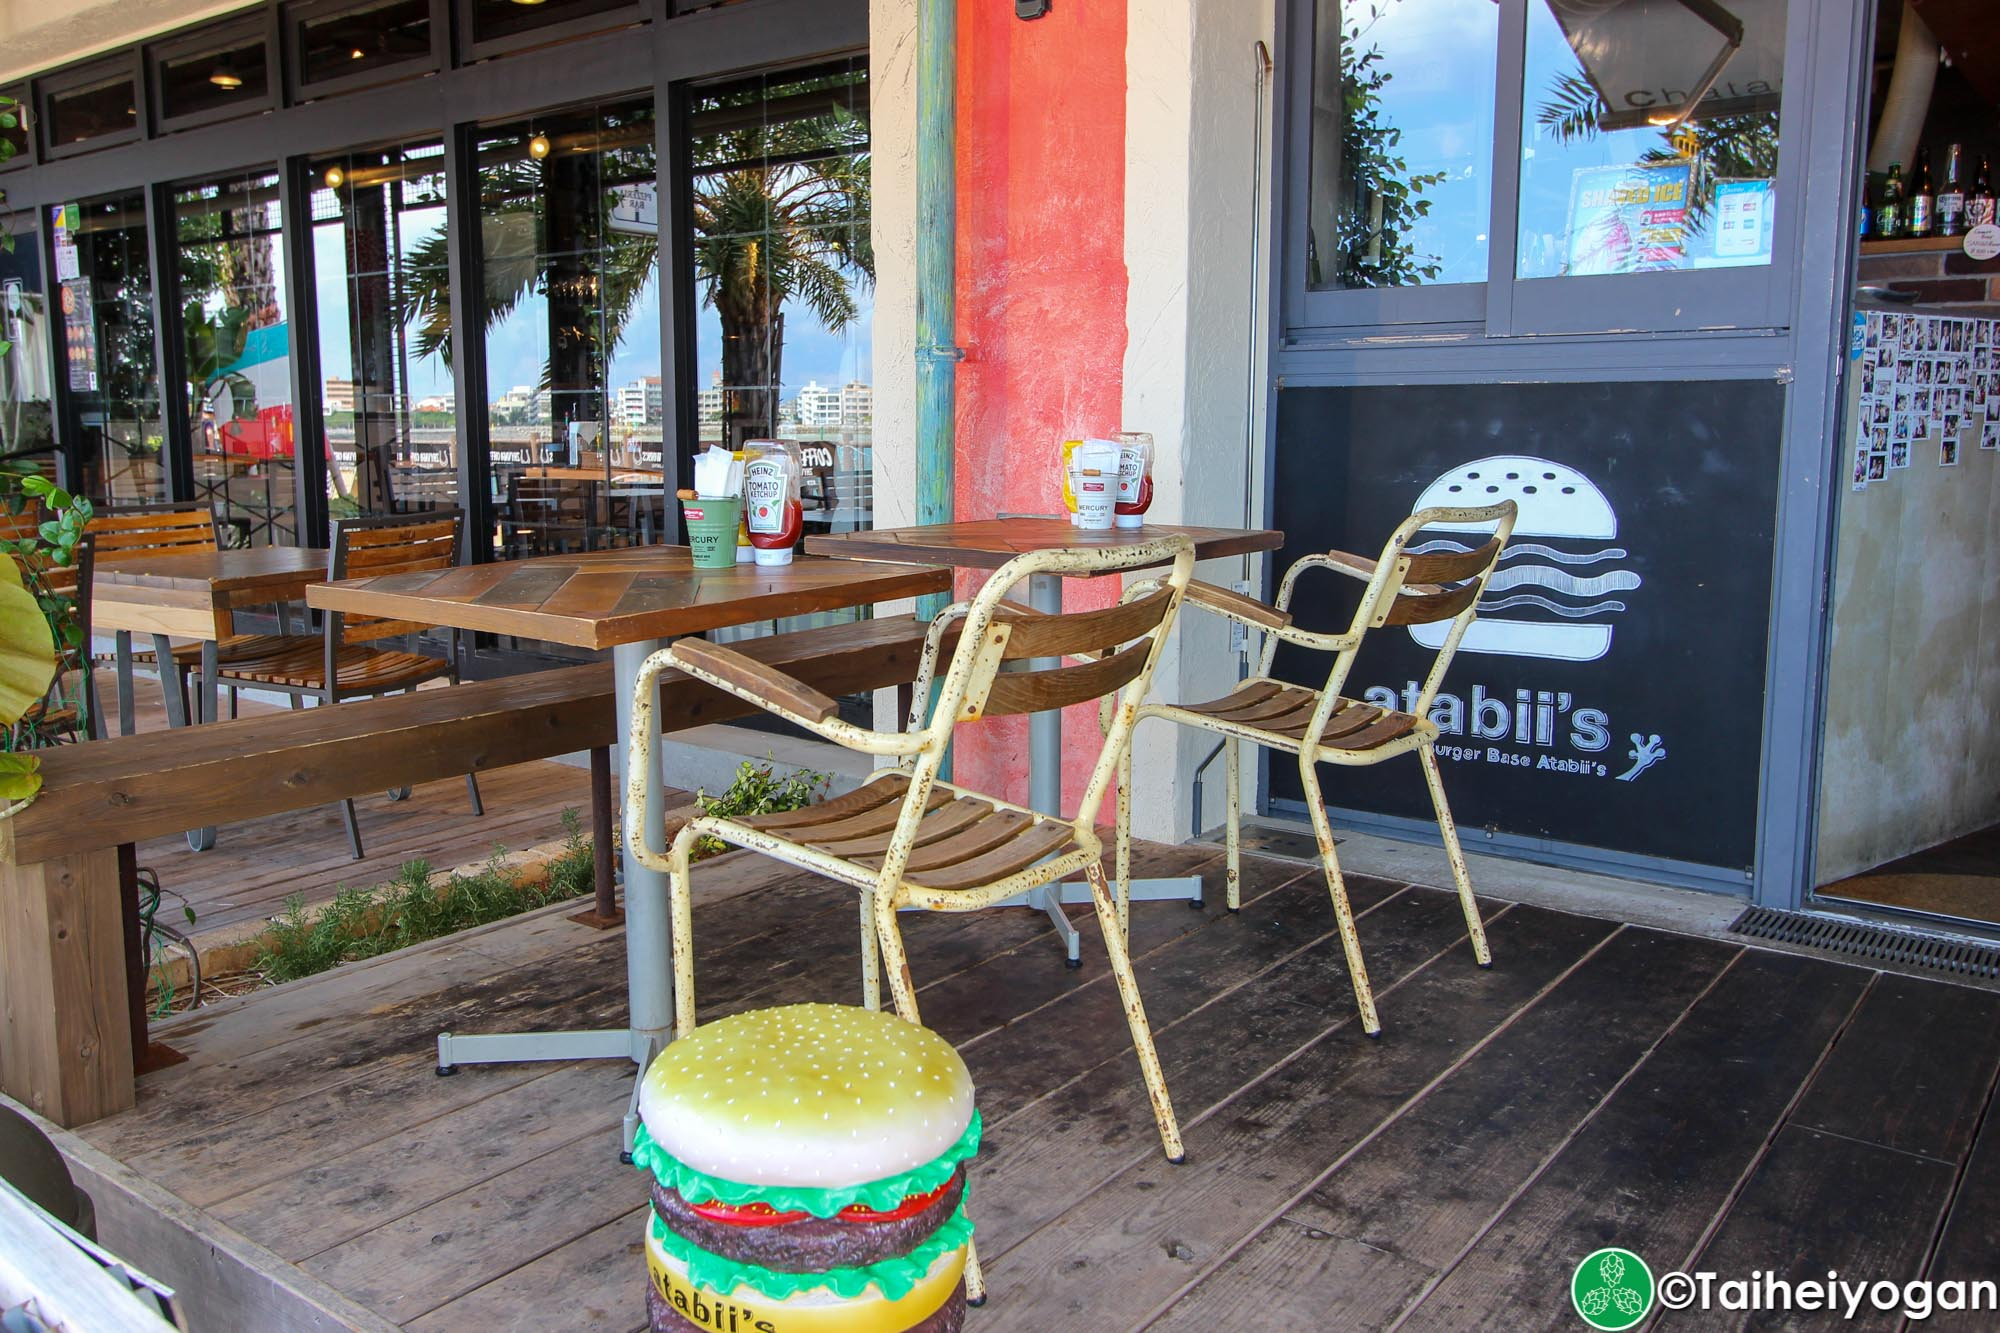 Chatan Burger Base Atabiis - Outdoor Seating